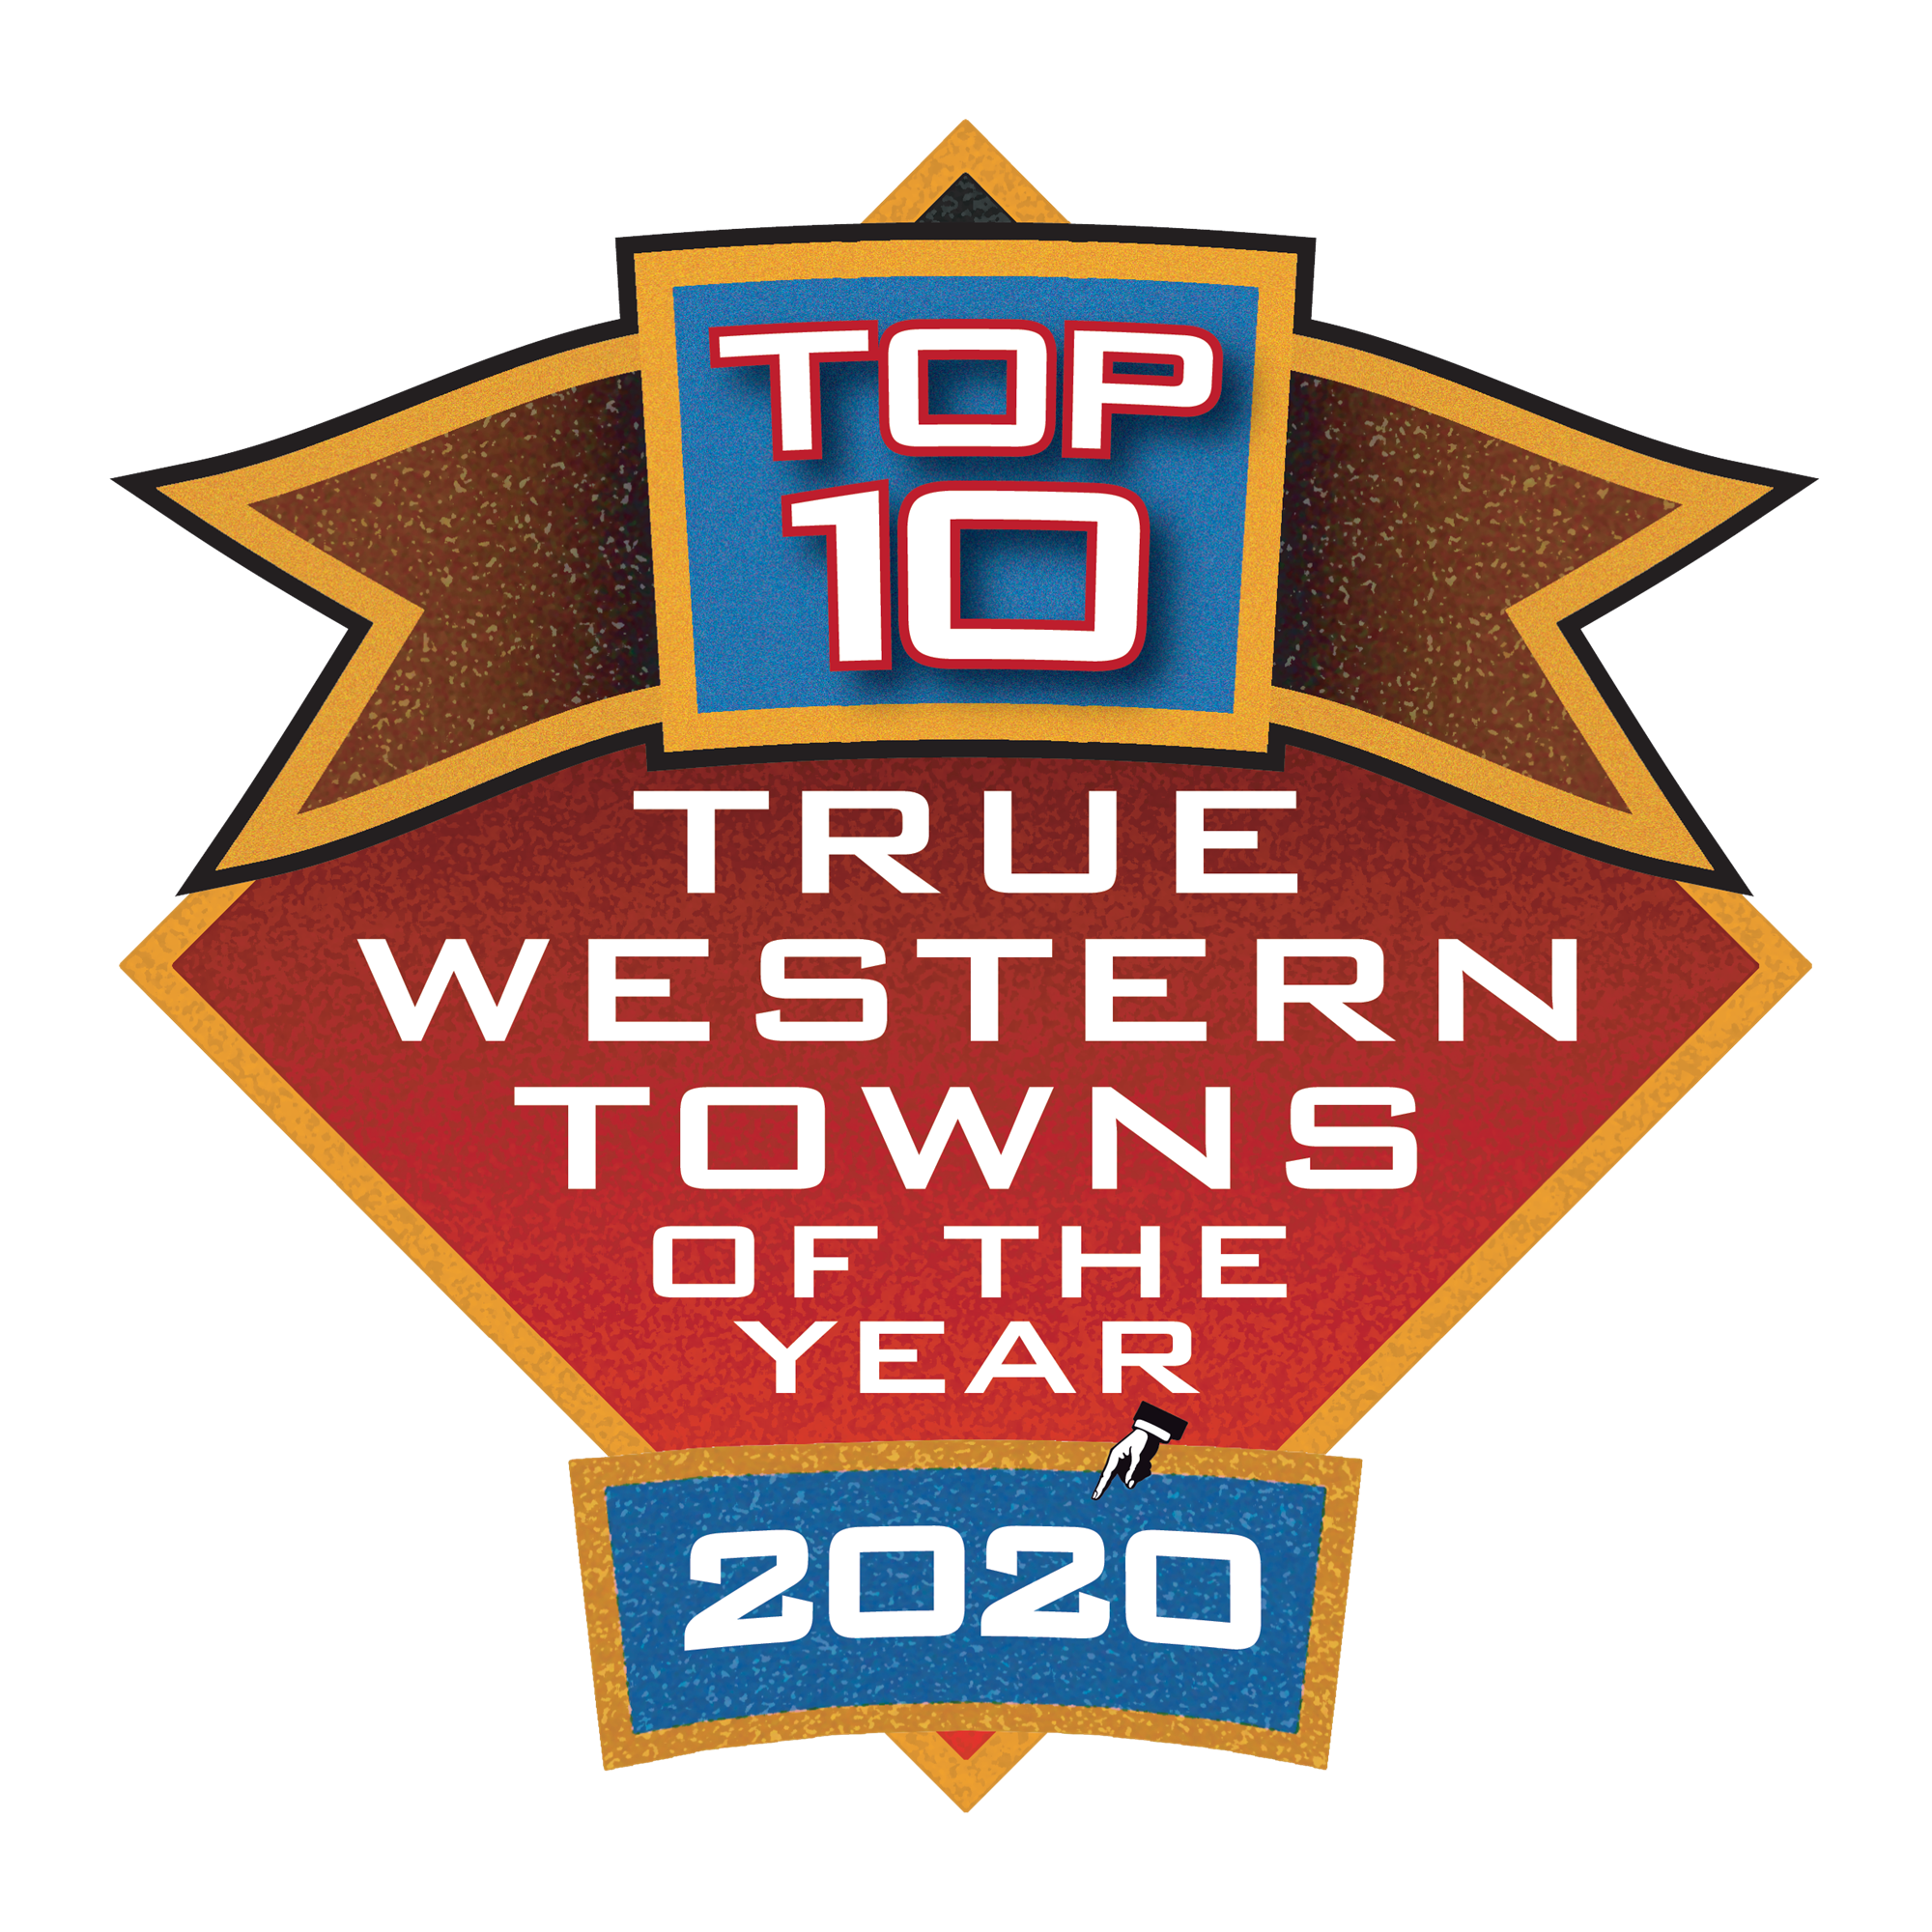 Top 10 Western Towns 2020 - San Angelo Claims #1 Spot